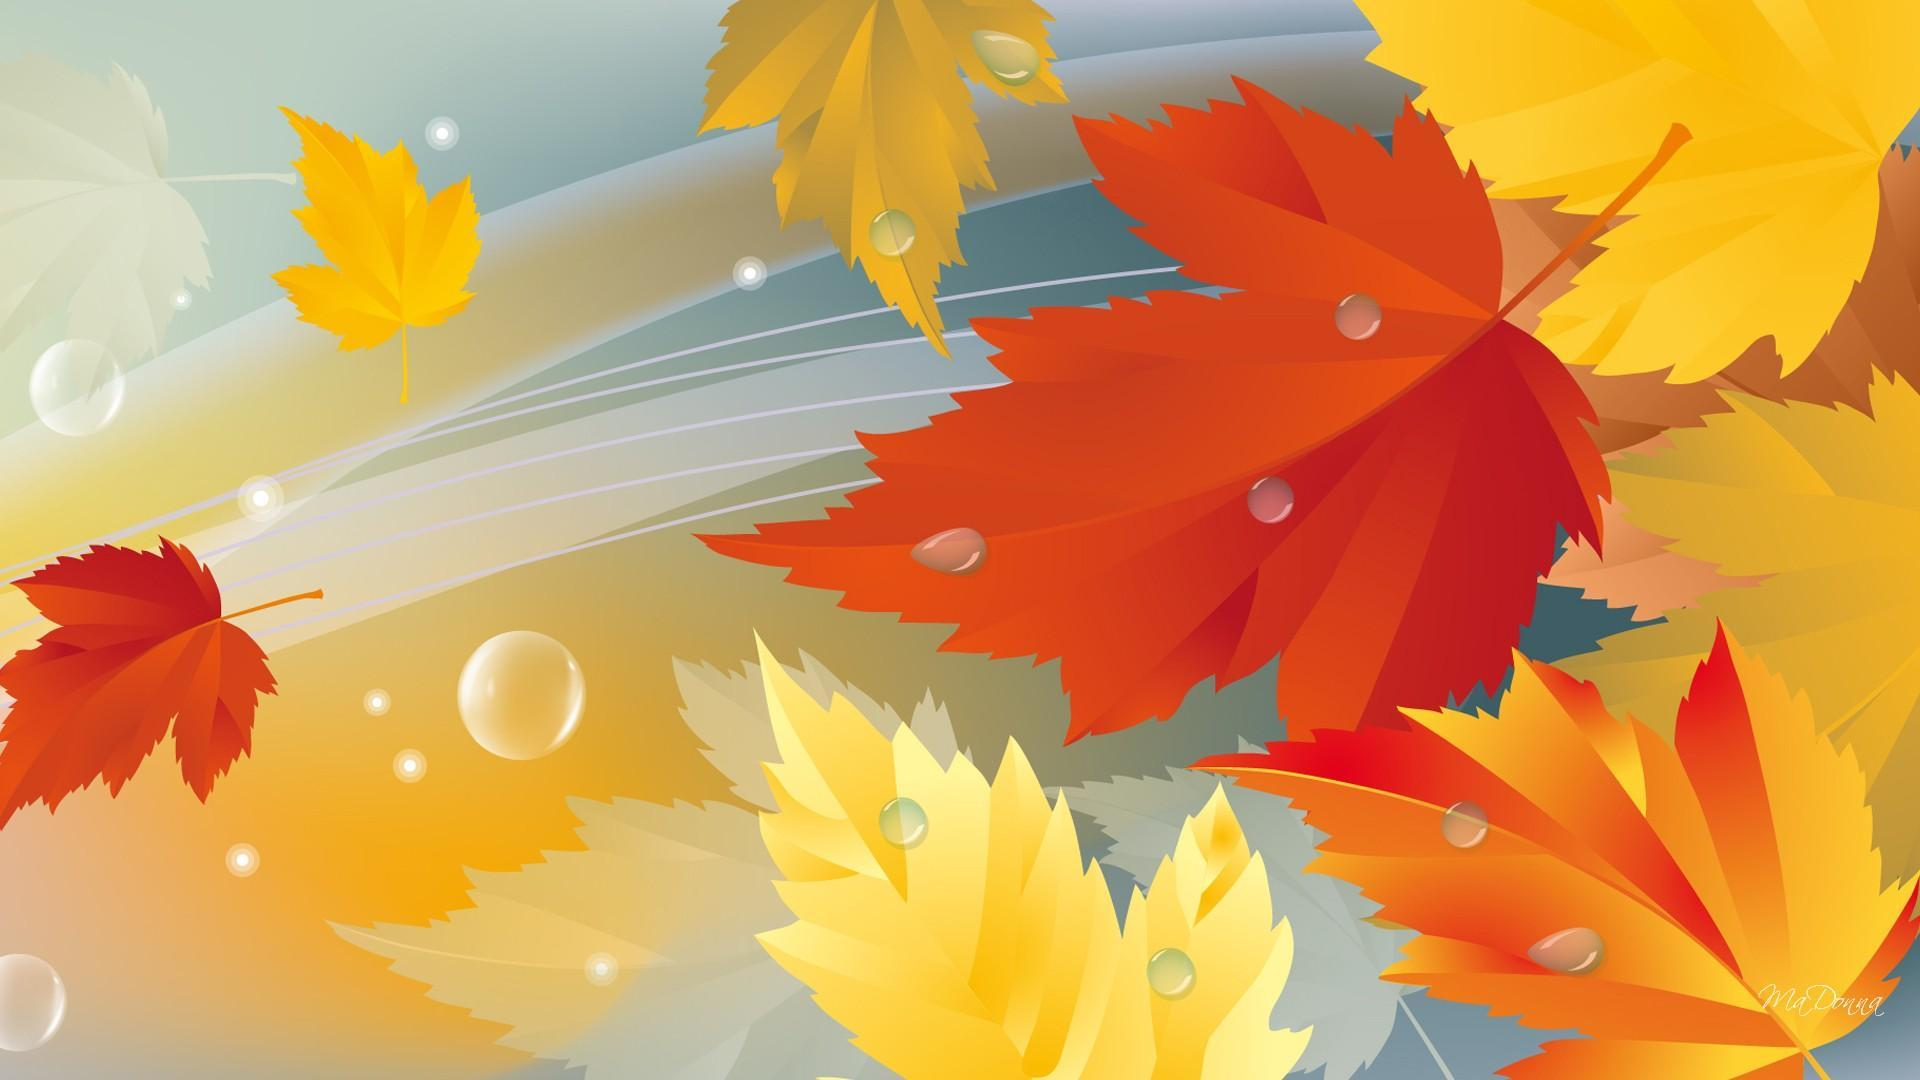 Animated Falling Leaves Wallpaper The Wind Blows Hd Desktop Wallpaper Widescreen High